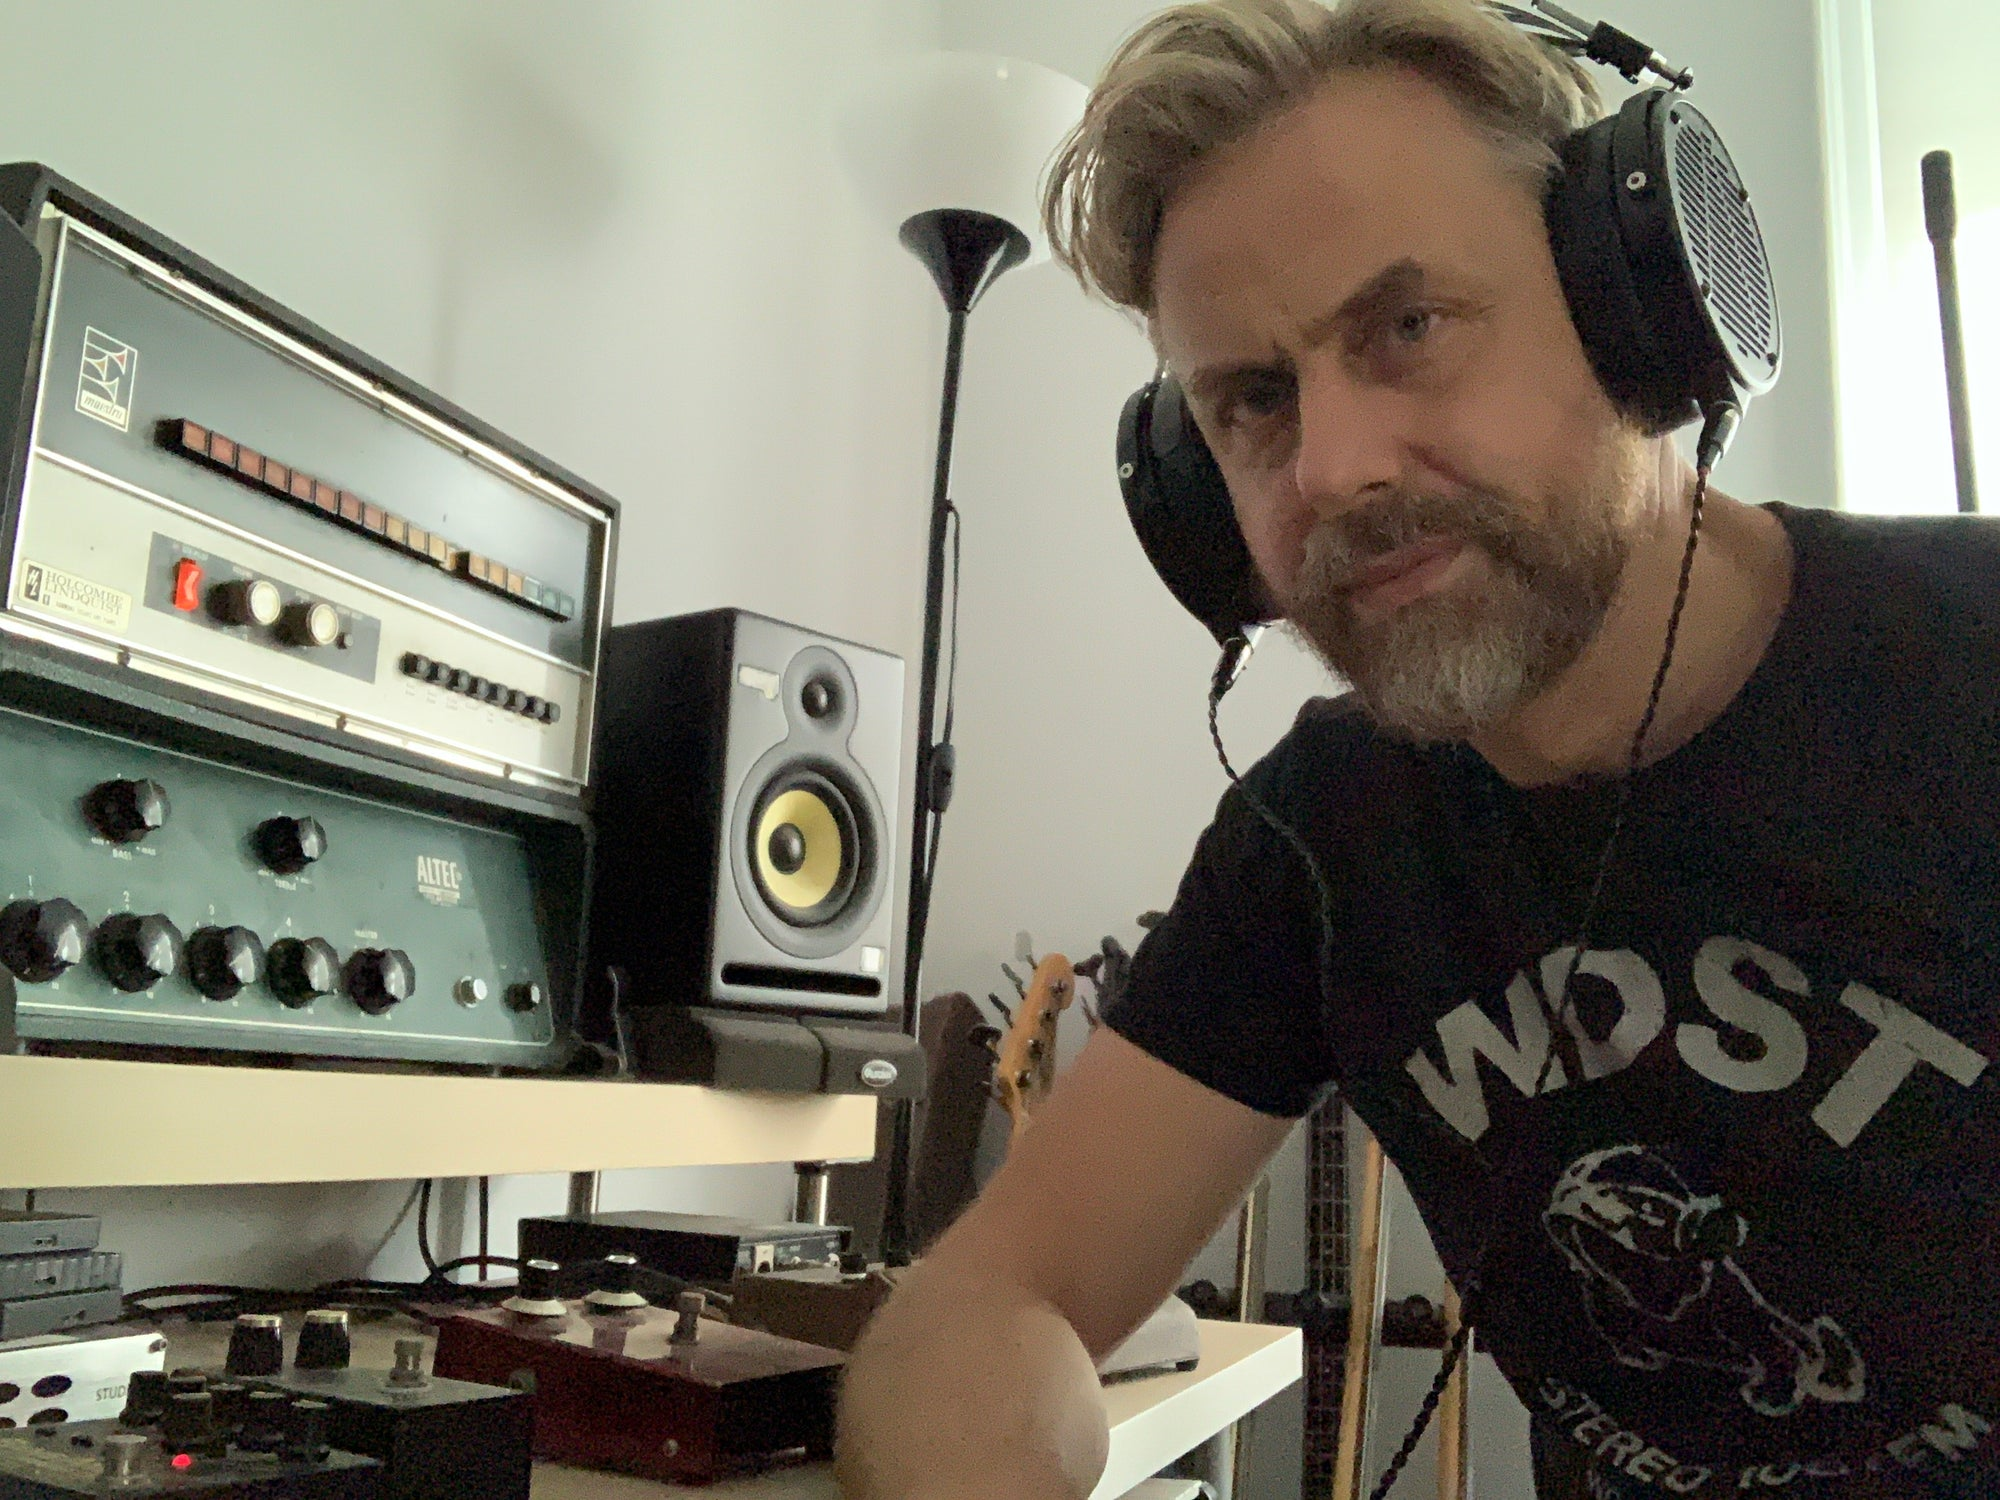 Audeze dives deep with bassist and composer Chris Lightcap